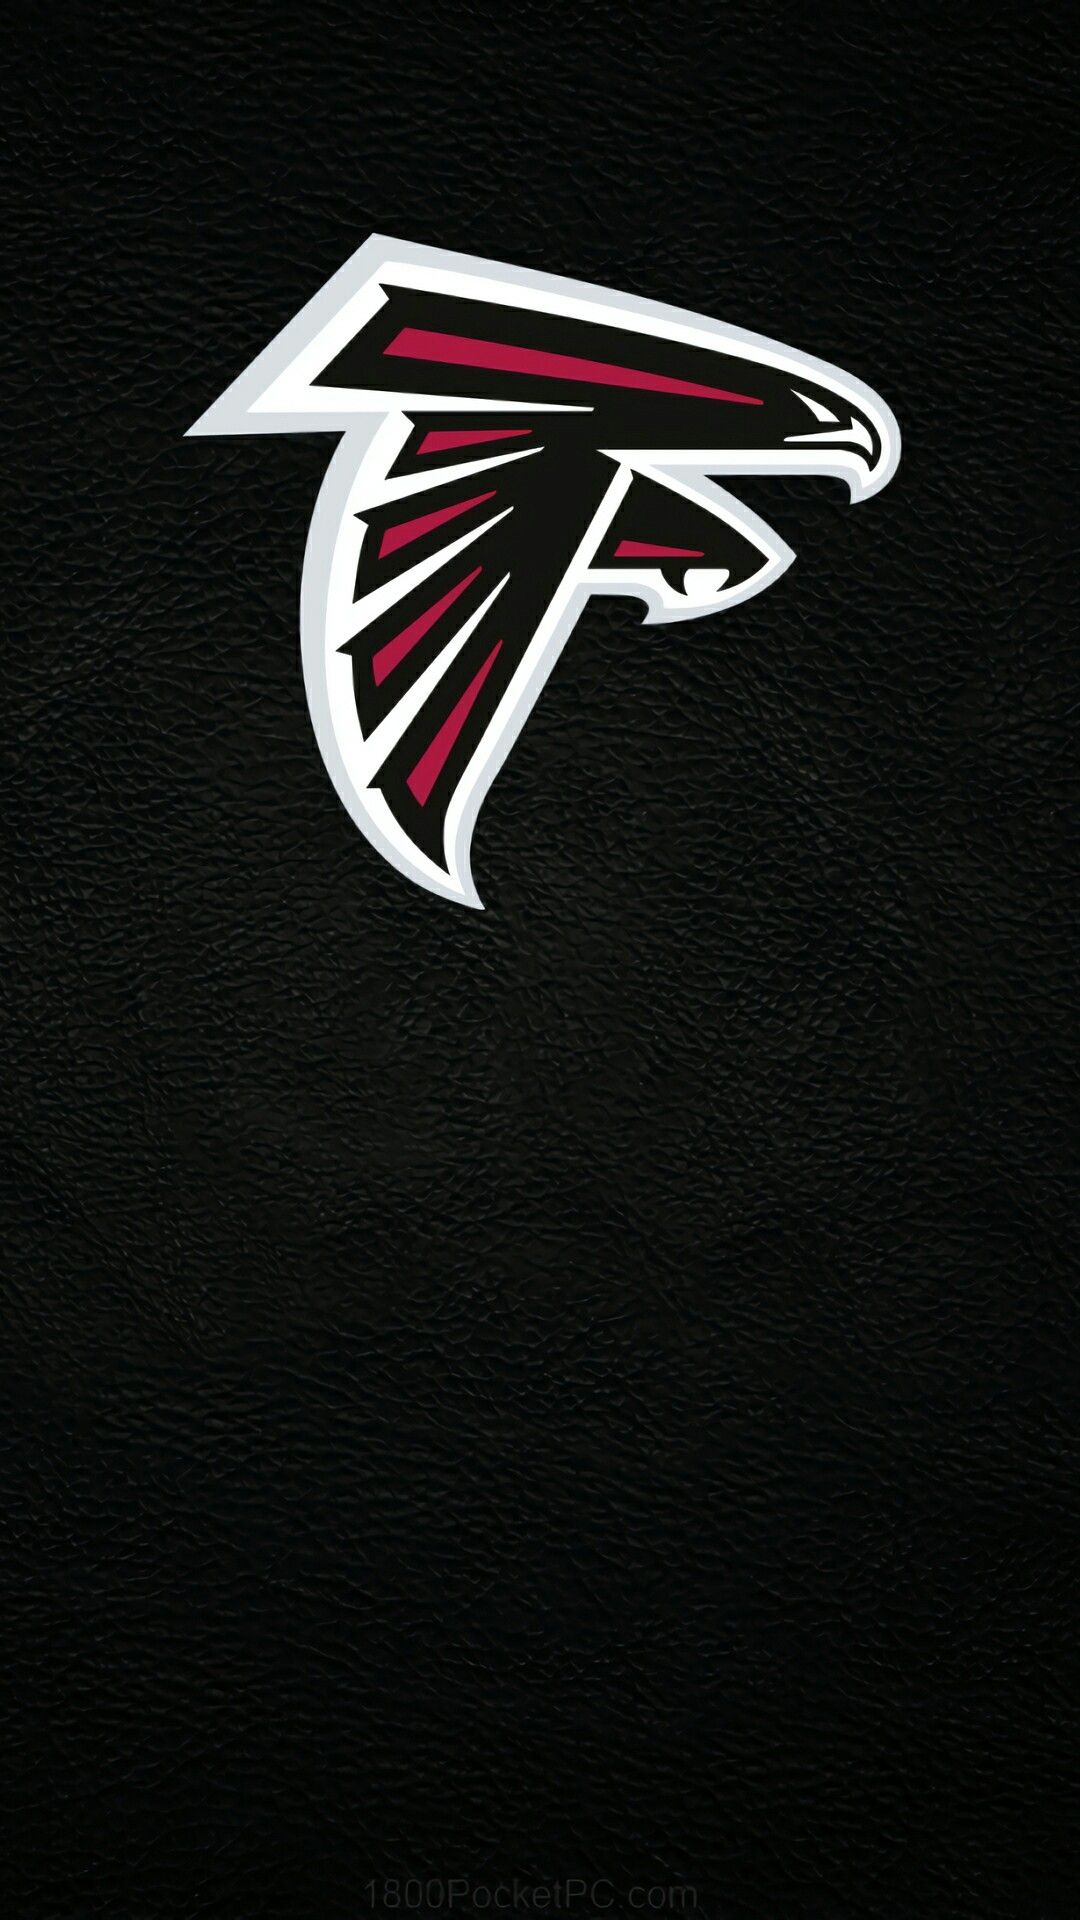 Pin By Emmajulianq On Atlanta Falcons Atlanta Falcons Falcons Football Atlanta Falcons Football